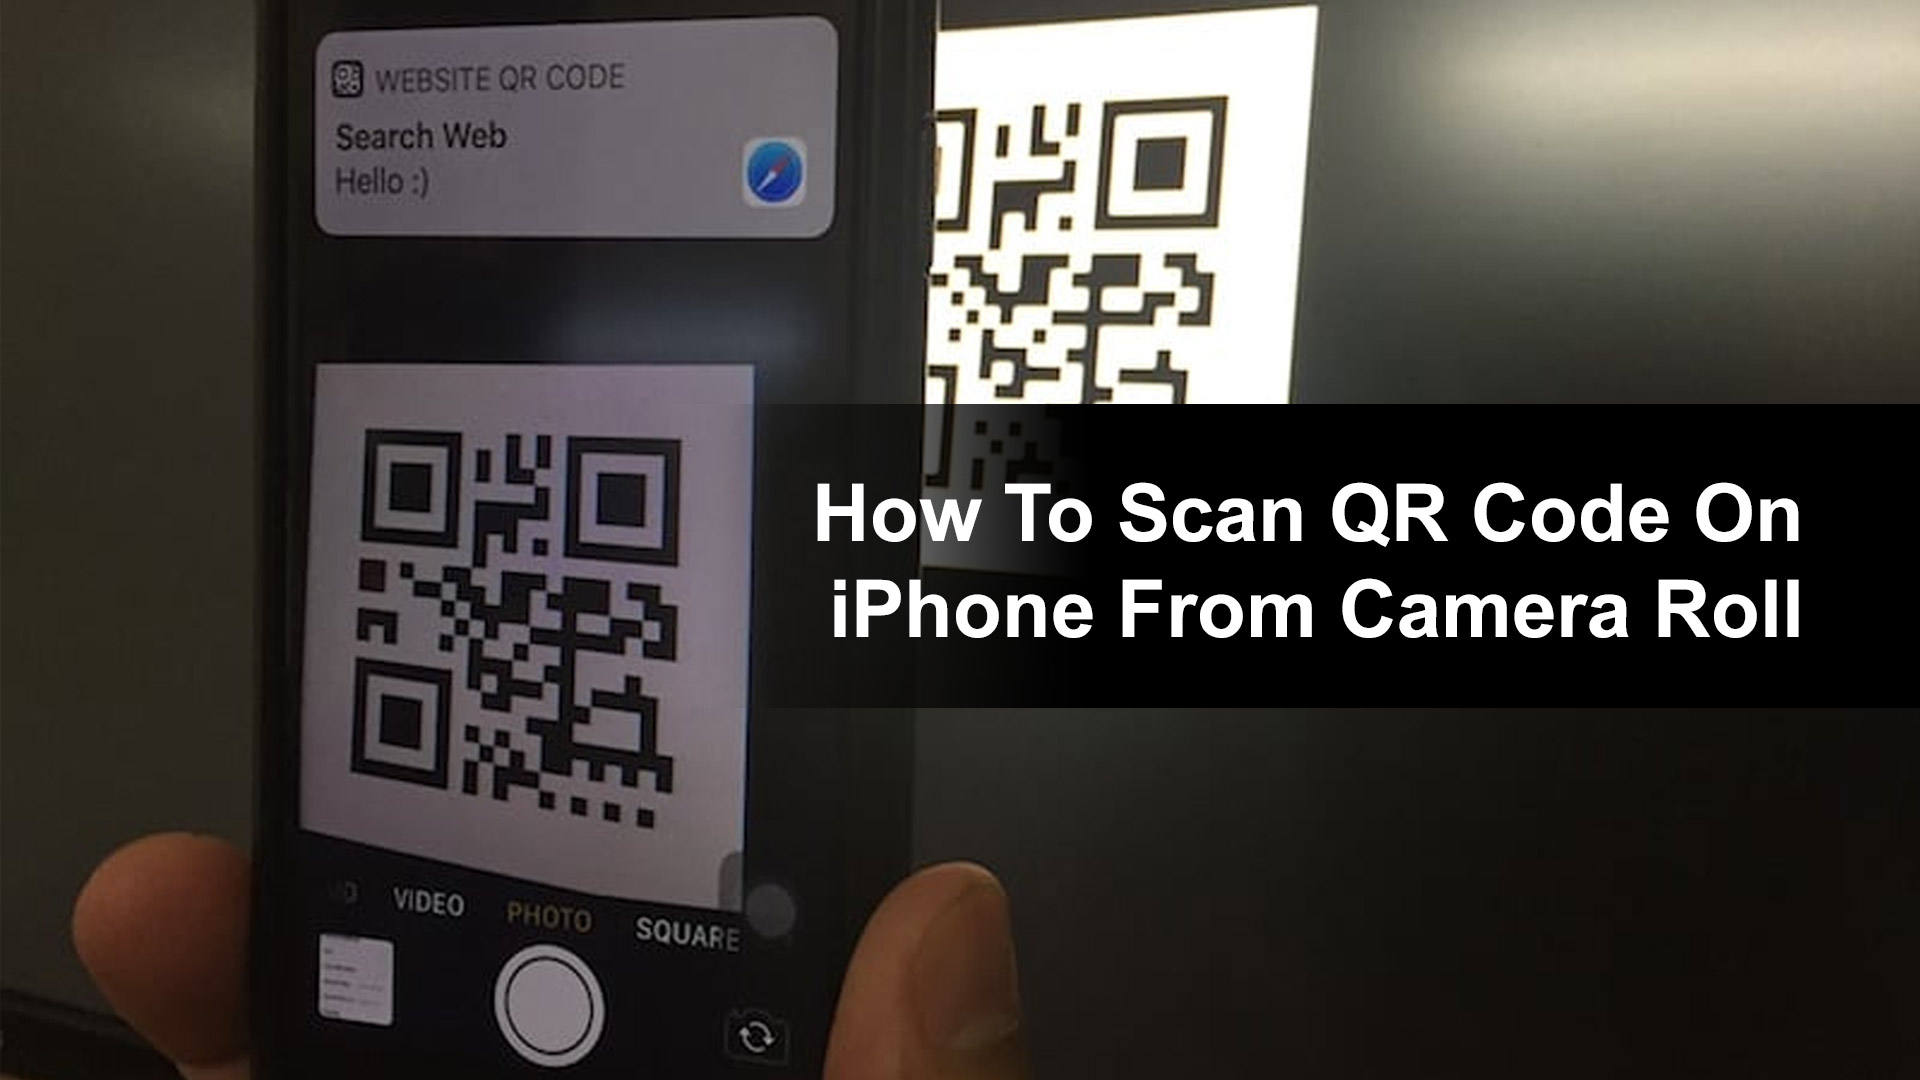 How To Scan QR Code On iPhone From Camera Roll